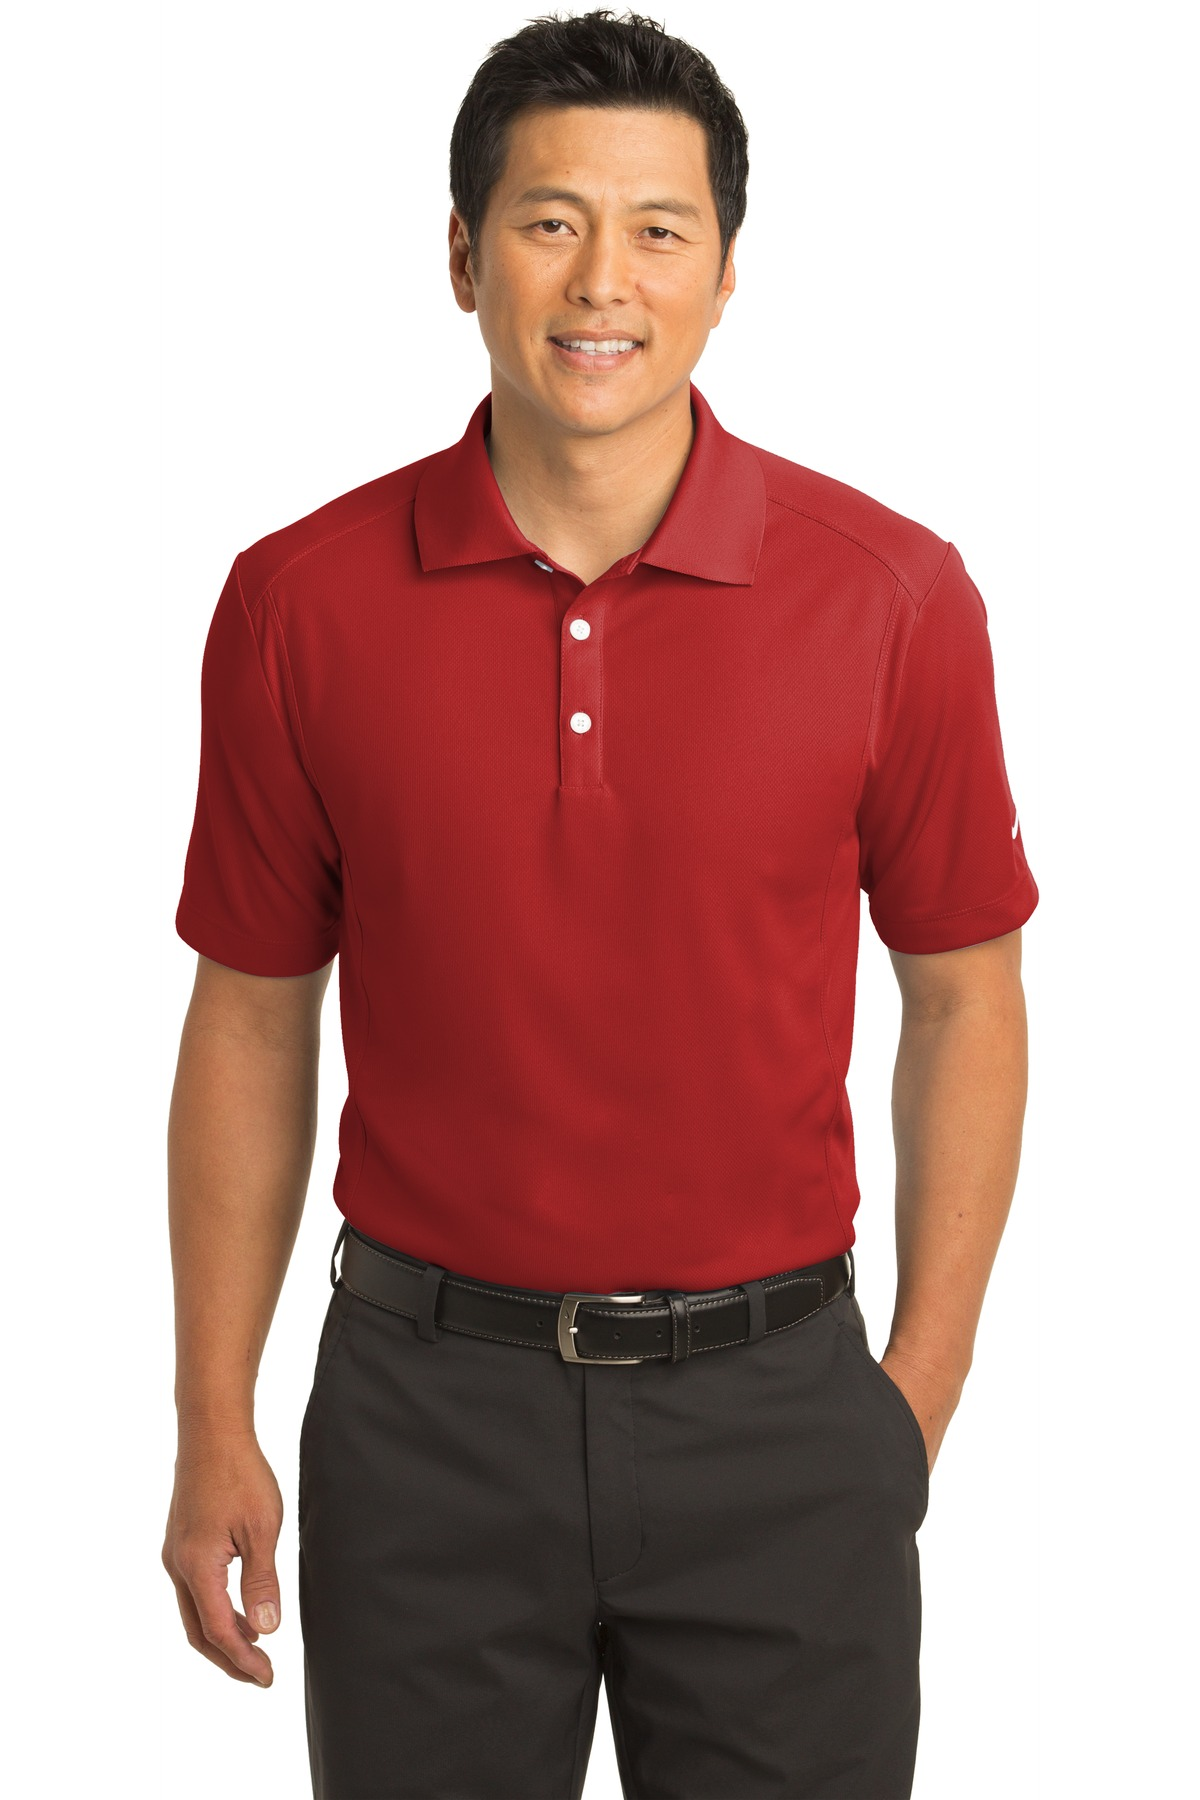 Nike Dri-FIT Classic Polo.  267020 - Varsity Red